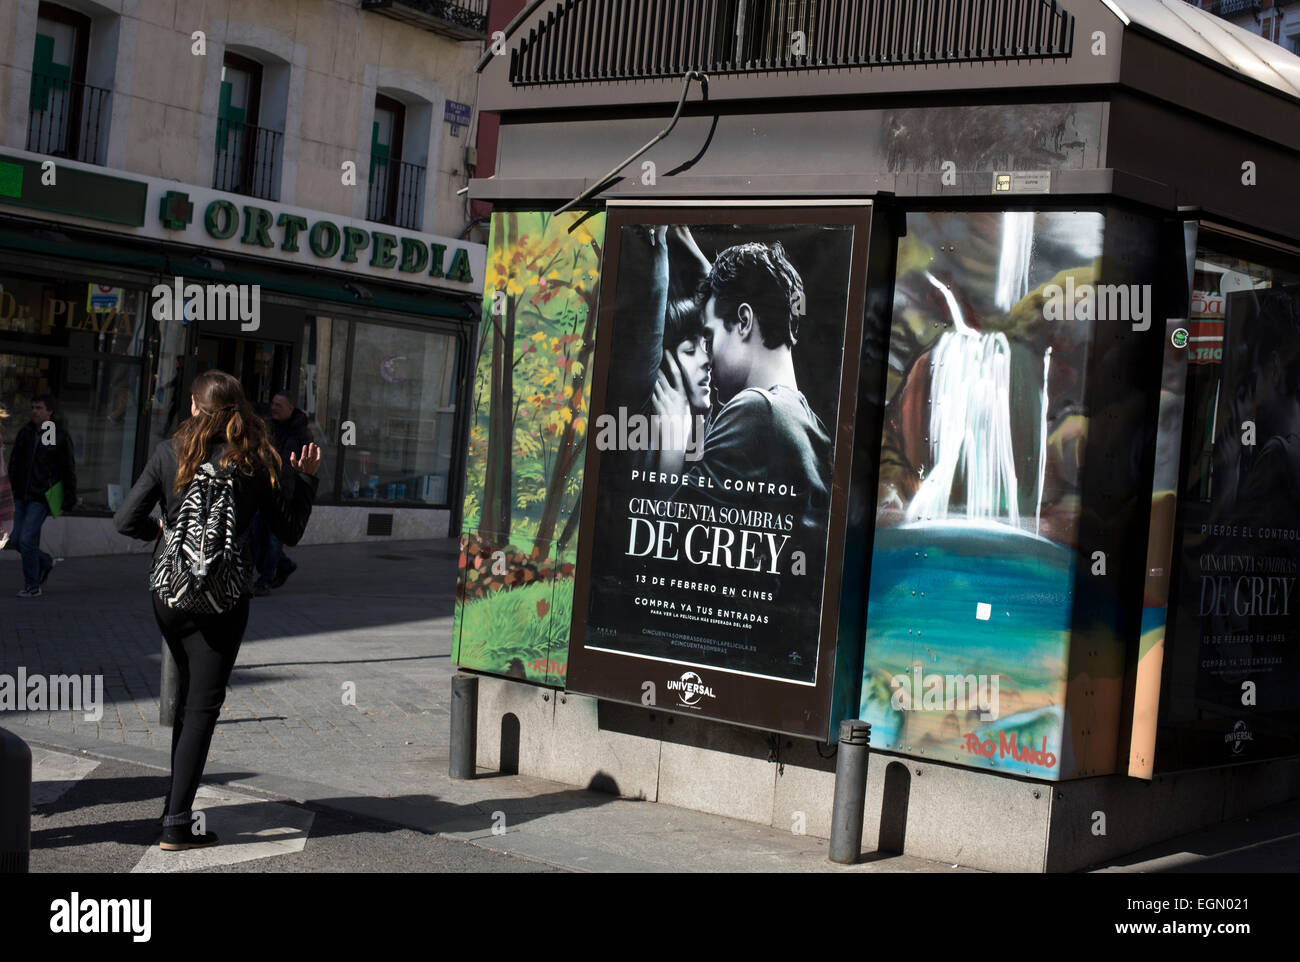 Fifty shades grey film poster spanish version - Stock Image